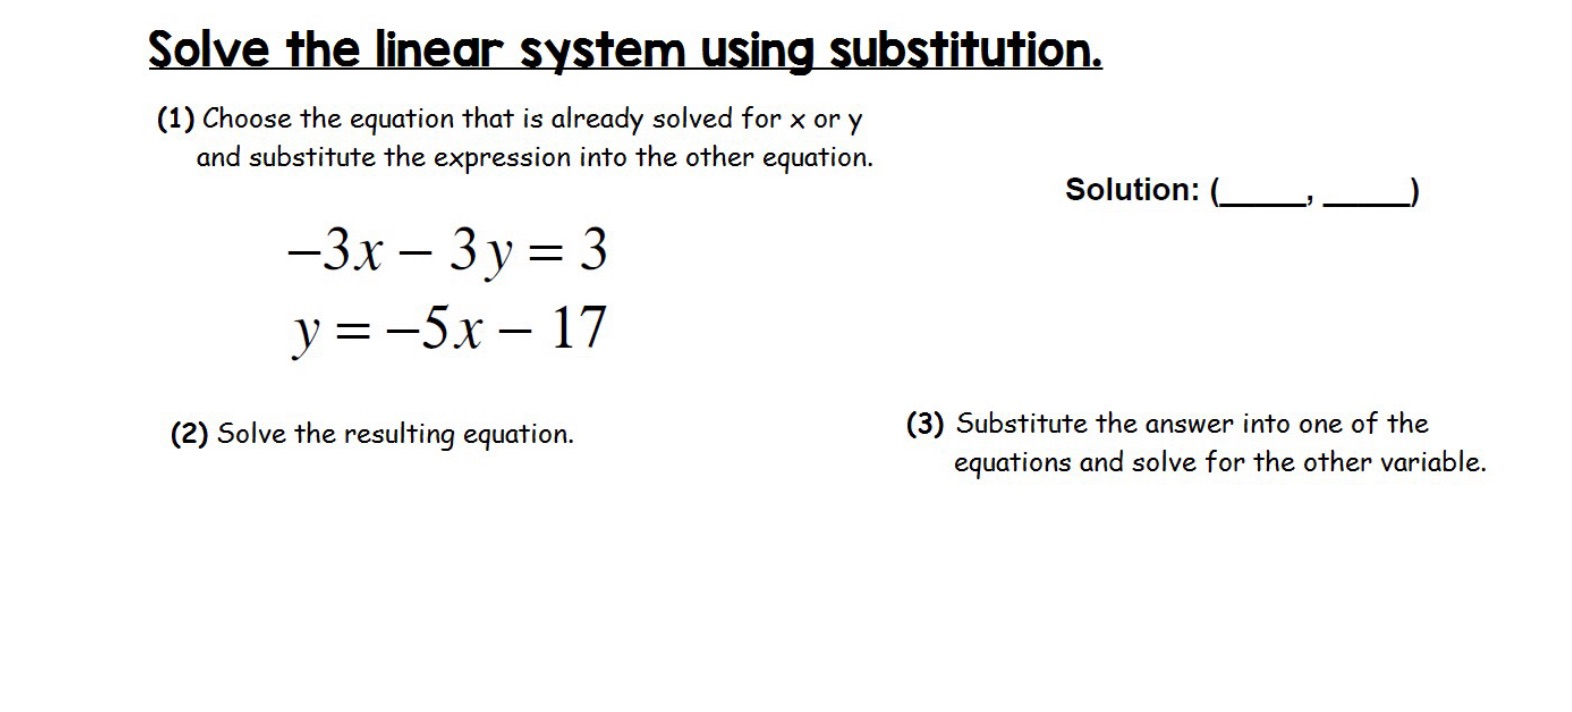 slide from lesson on solve the linear system using substitution